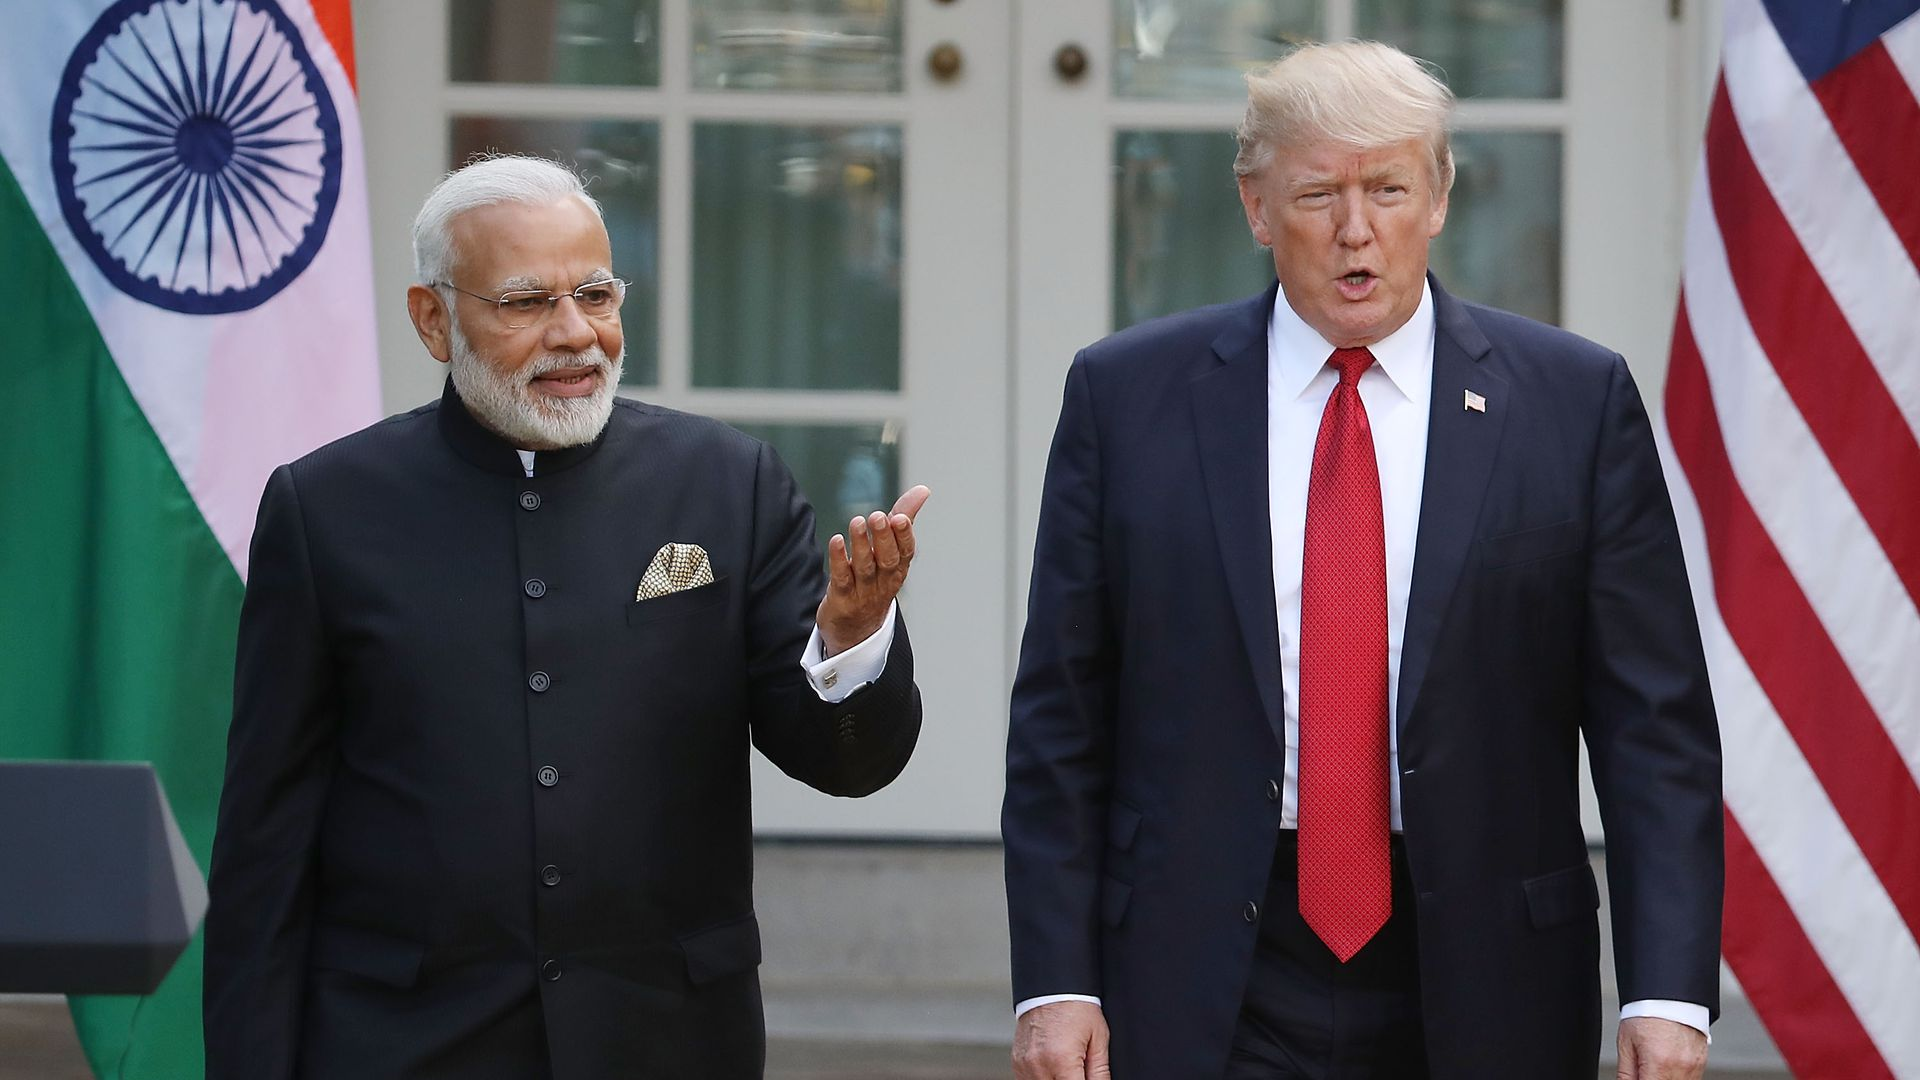 President Trump and Indian Prime Minister Narendra Modi